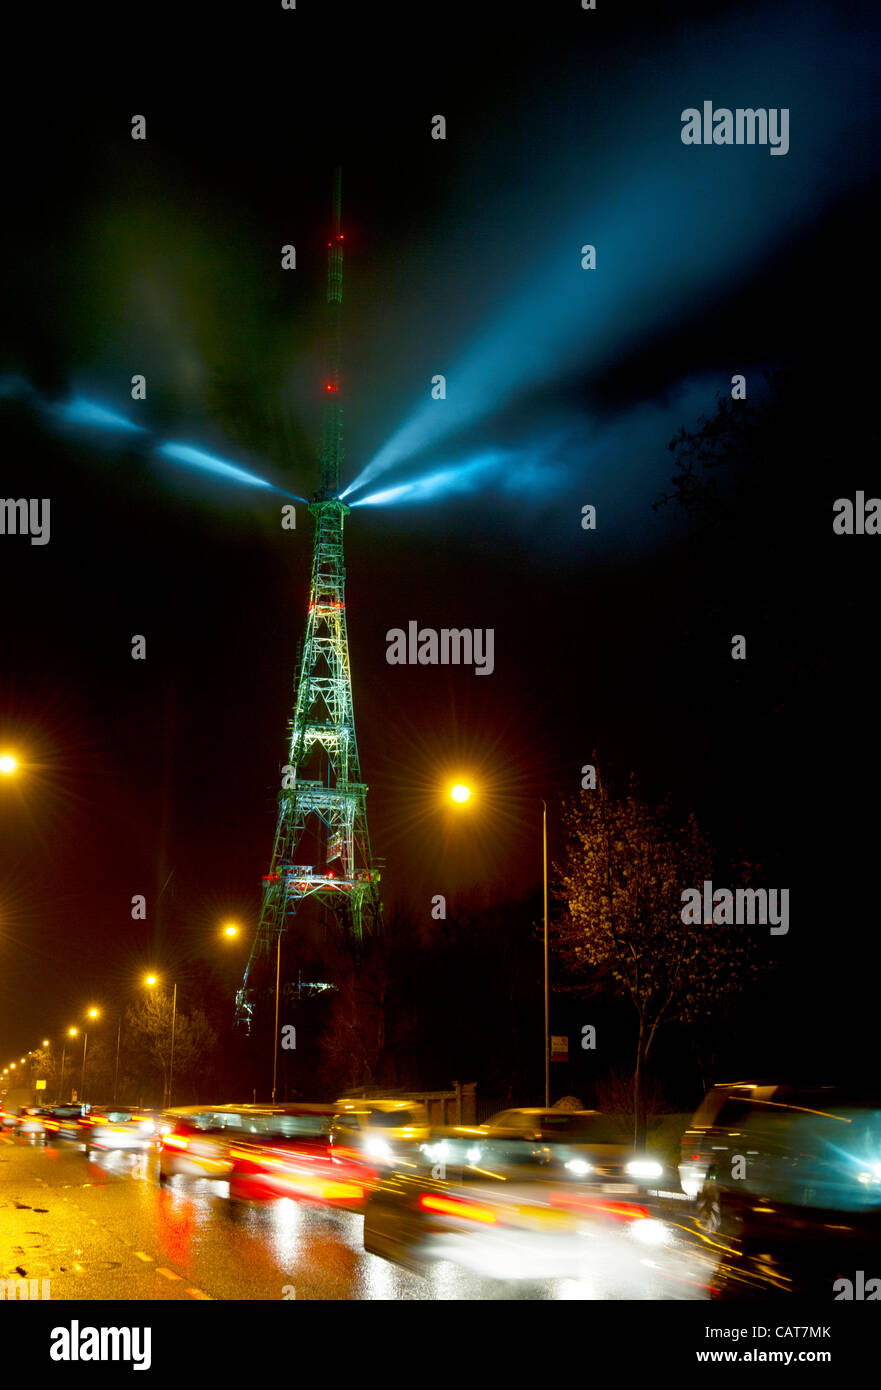 London, UK. 18 April, 2012. Laser light show at the Crystal Palace transmitter to celebrate the switchover from - Stock Image